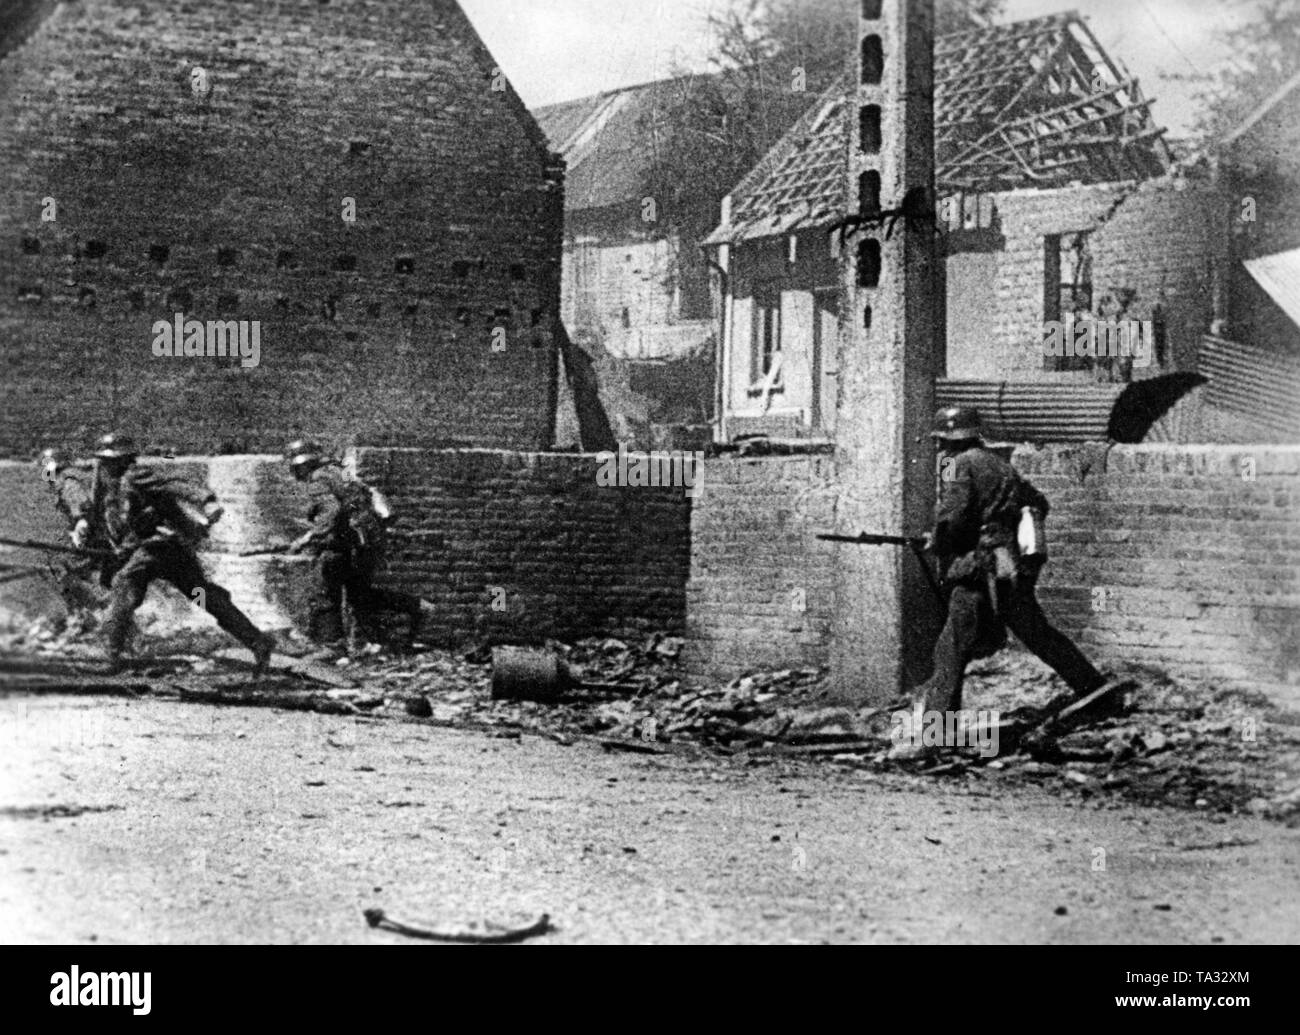 A group of German infantrymen are walking along a street during the fighting for a French village. Stock Photo